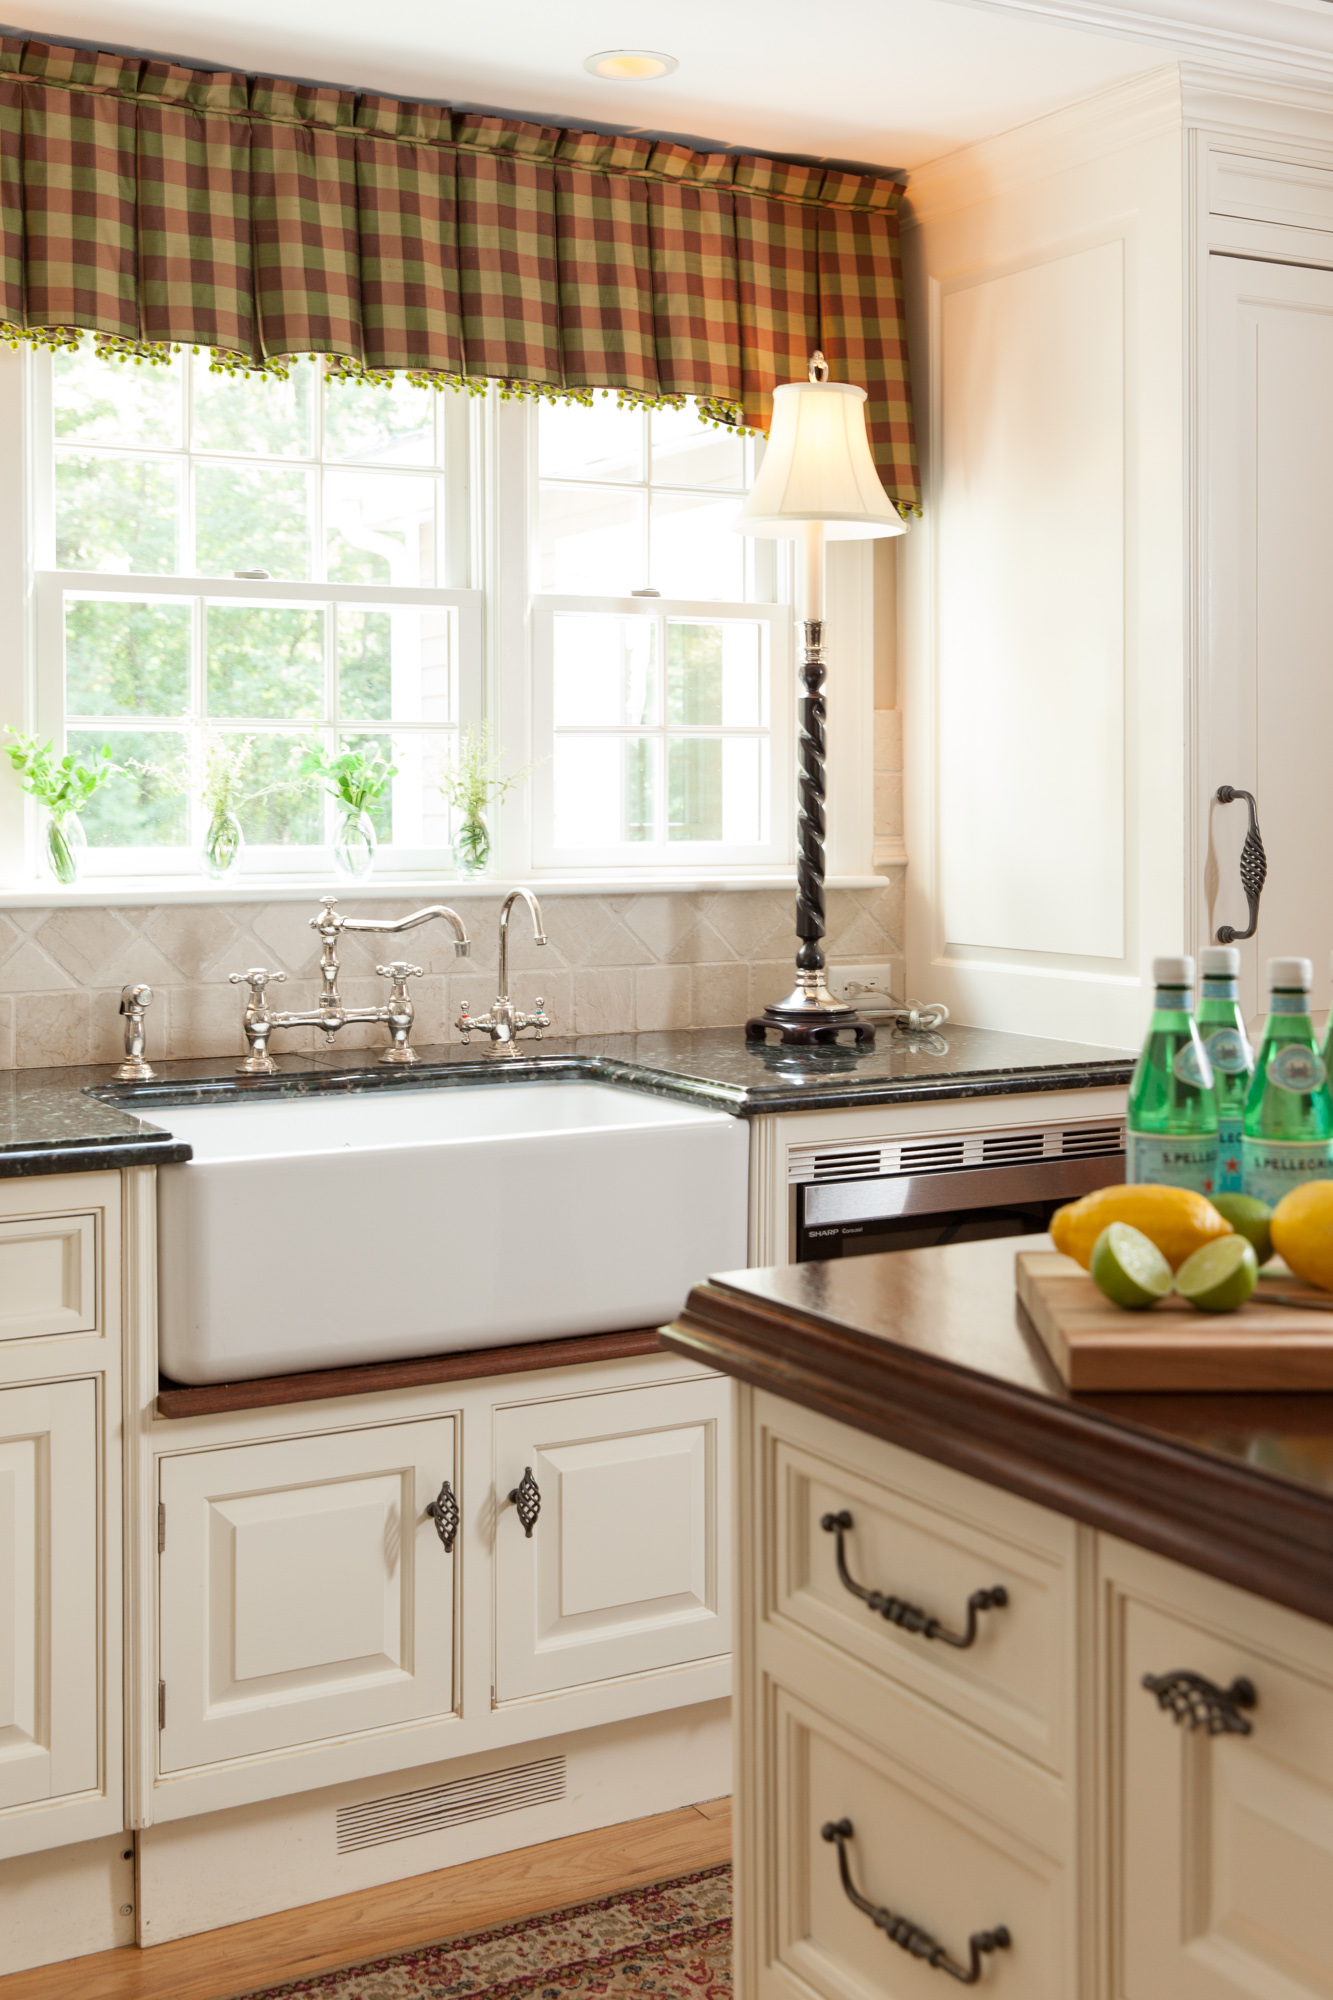 The white cabinetry against the dark wood gave an old country feel with an updated twist